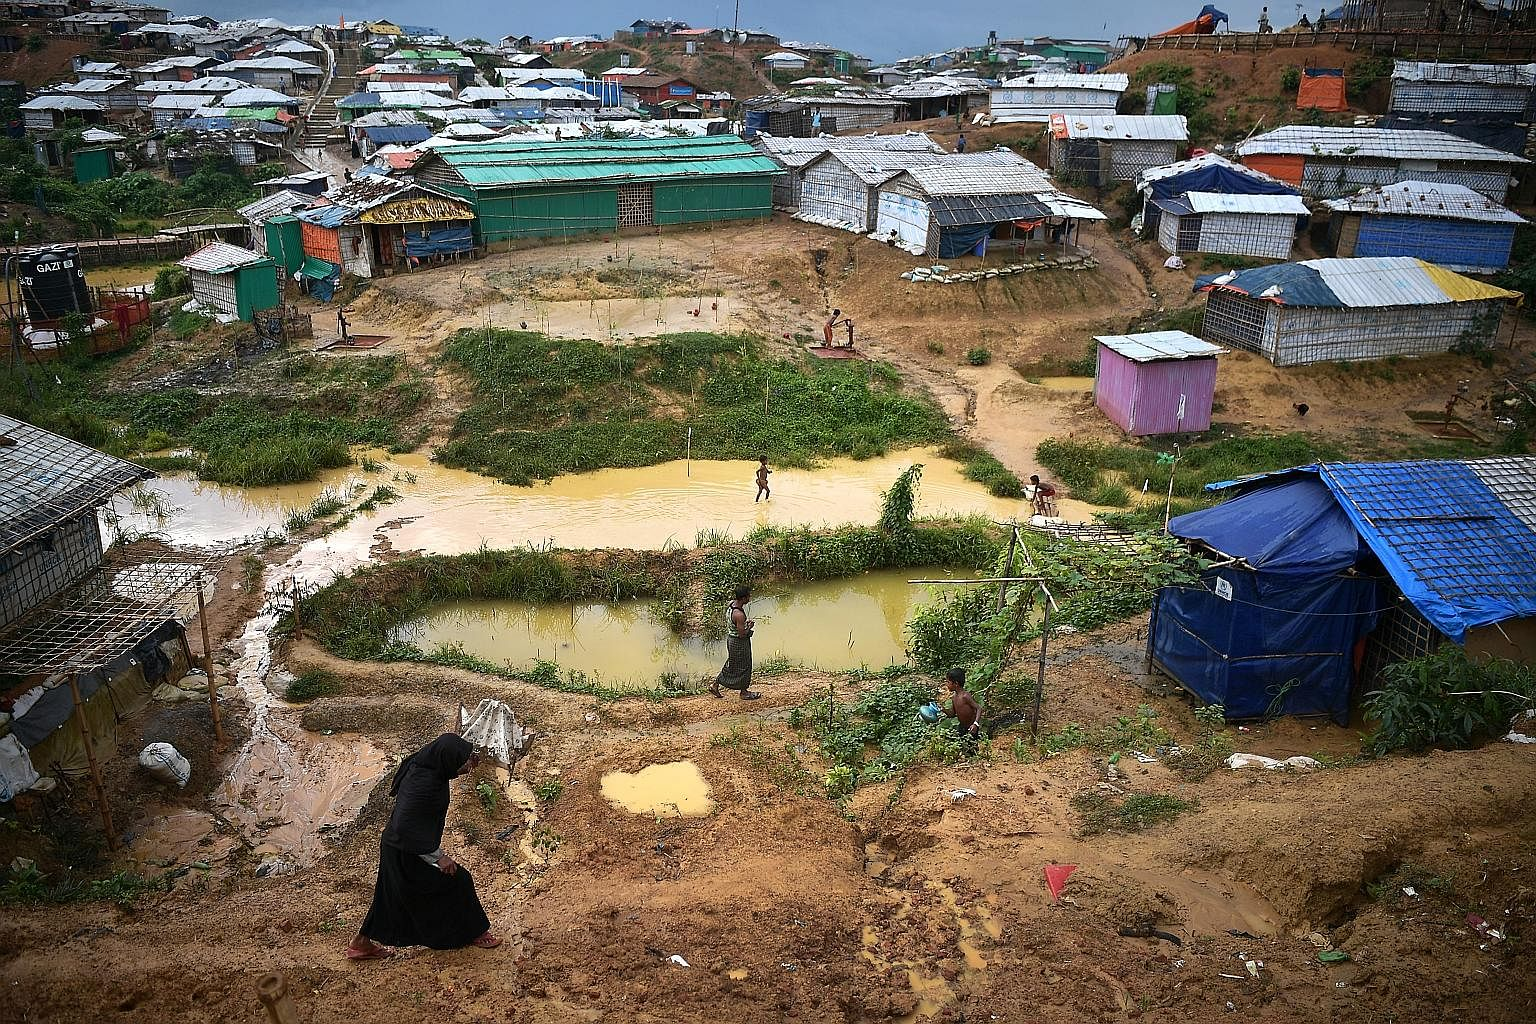 The ST team spent nine days in Bangladesh to curate a first-hand account of the daily existence of the Rohingya refugees in camps there. Rohingya refugees at the Kutupalong mega camp in Bangladesh's Cox's Bazar district in July. About 919,000 Rohingy